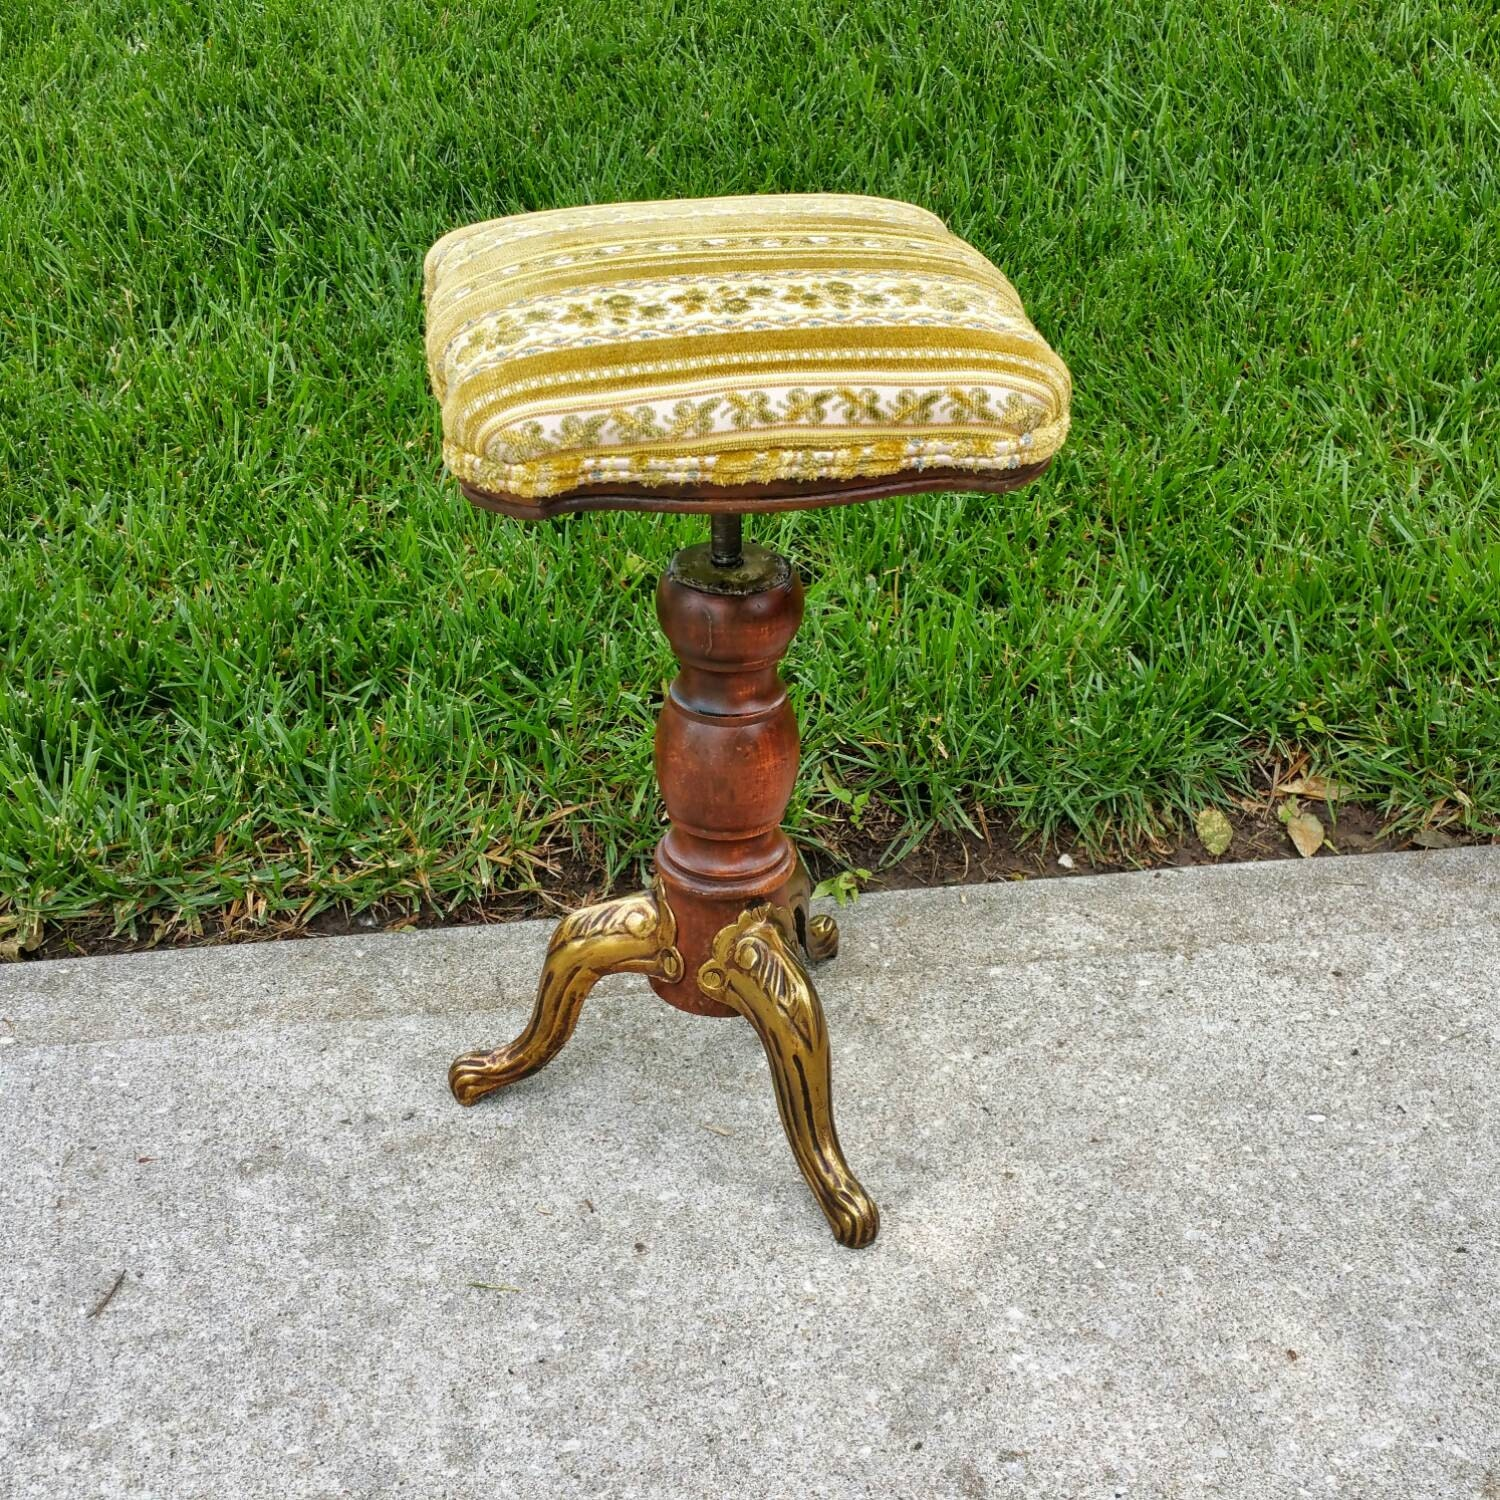 Antique Piano Stool With Metal Legs Adjustable Height